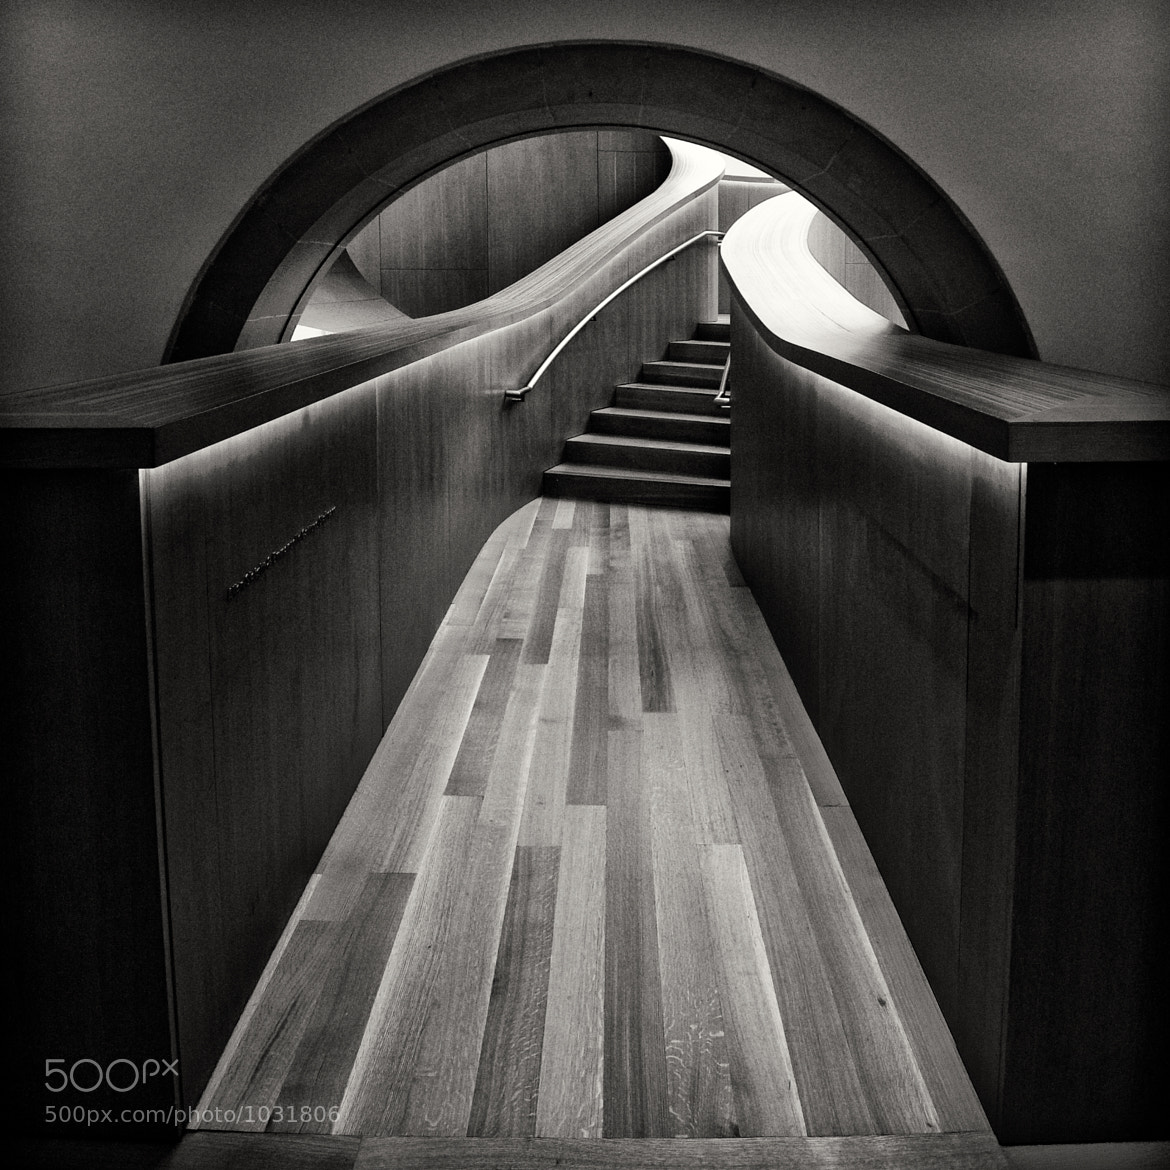 Photograph Art Gallery of Ontario #4 by Milan Juza on 500px